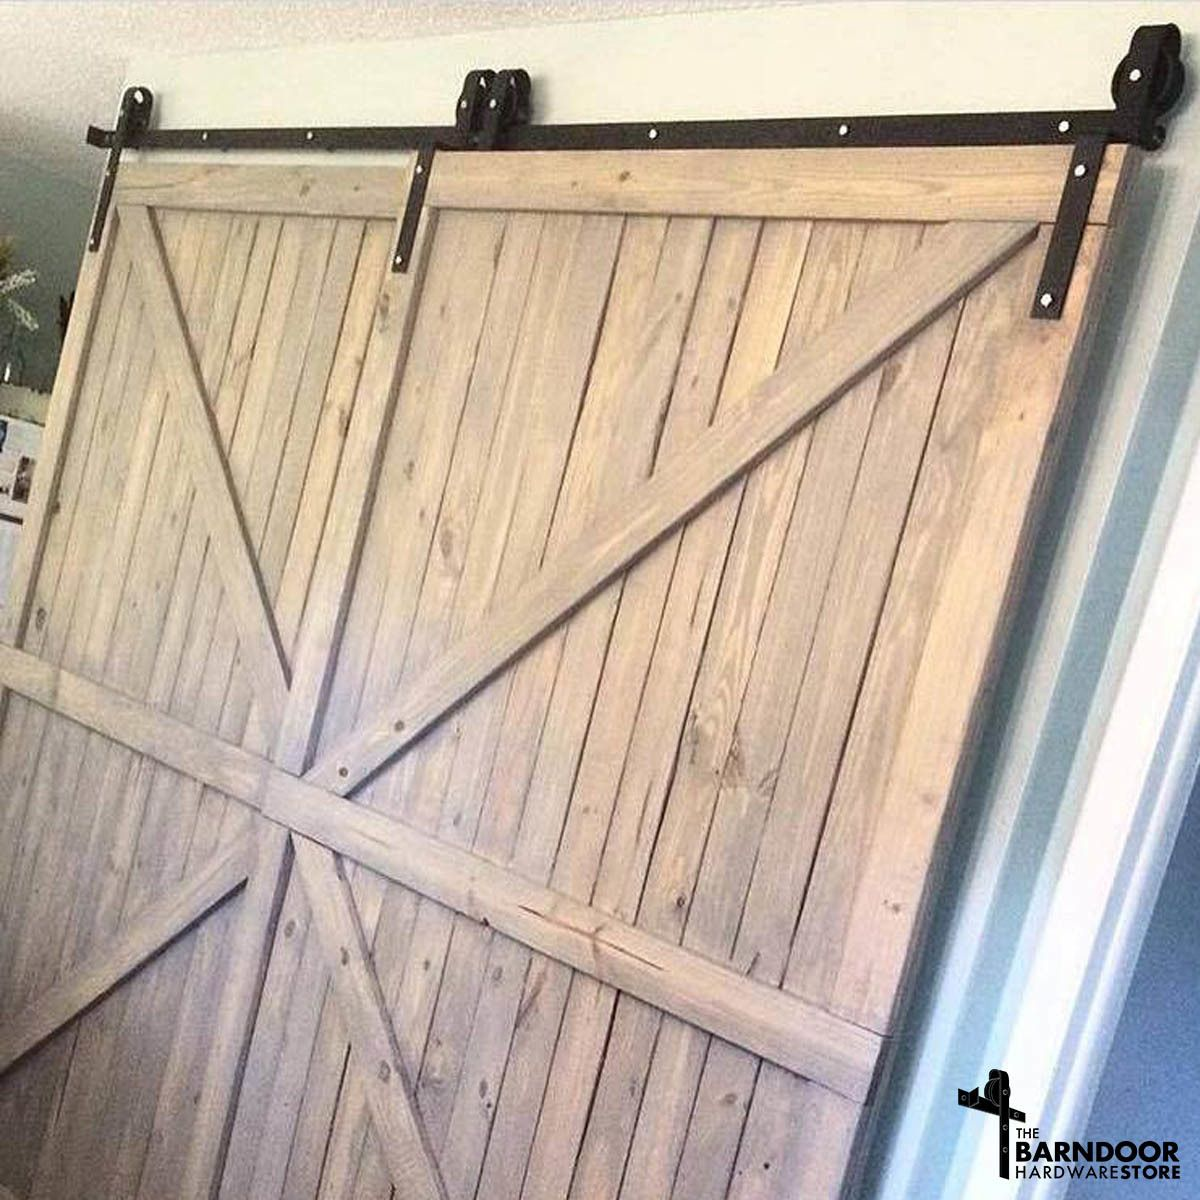 This Single Track Bypass Barn Door Hardware Kit Allows Two Doors To Over Lap Each Other So They Are Basically Alw Bypass Barn Door Garage Door Design Barn Door